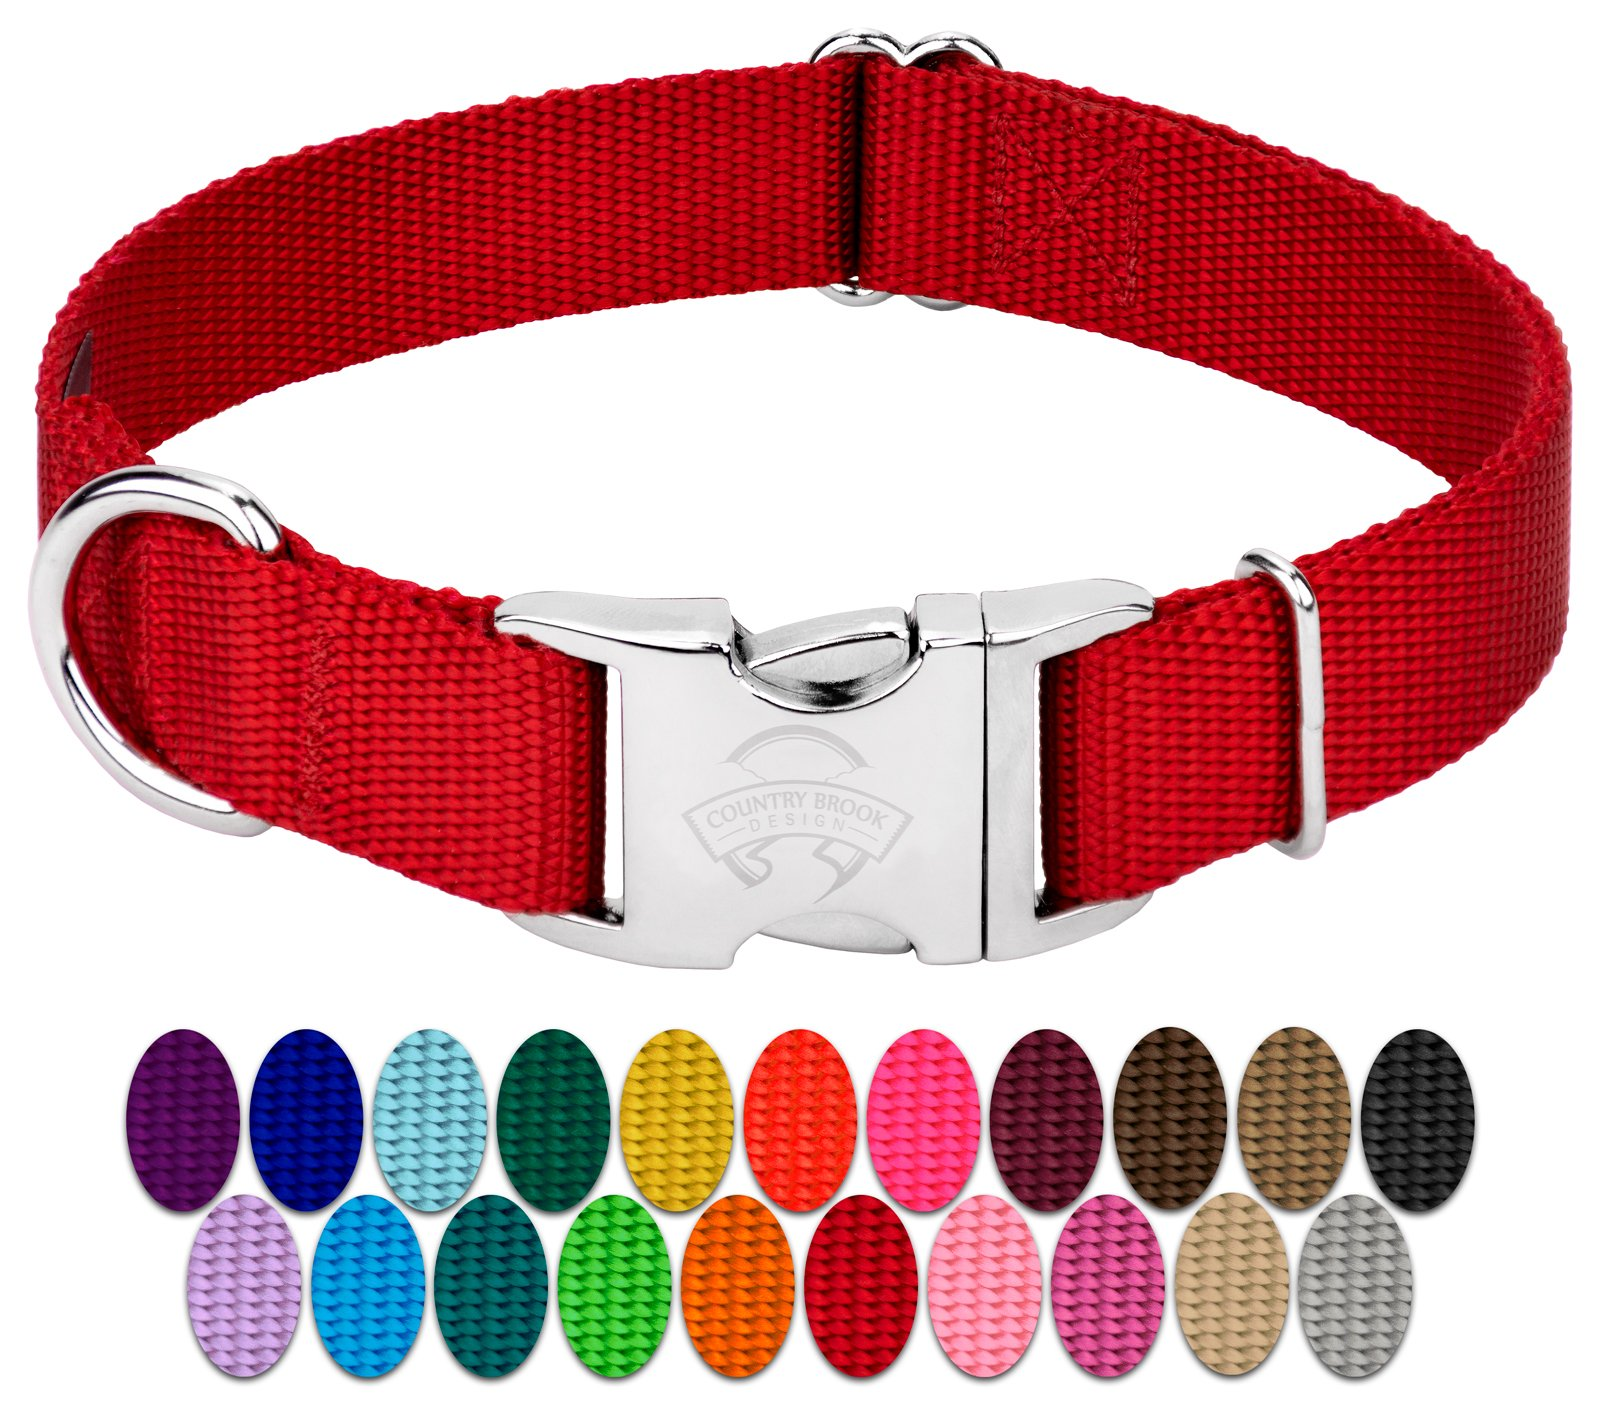 Country Brook Petz - Premium Nylon Dog Collar with Metal Buckle - Vibrant 22 Color Selection (Large, 1 Inch Wide)